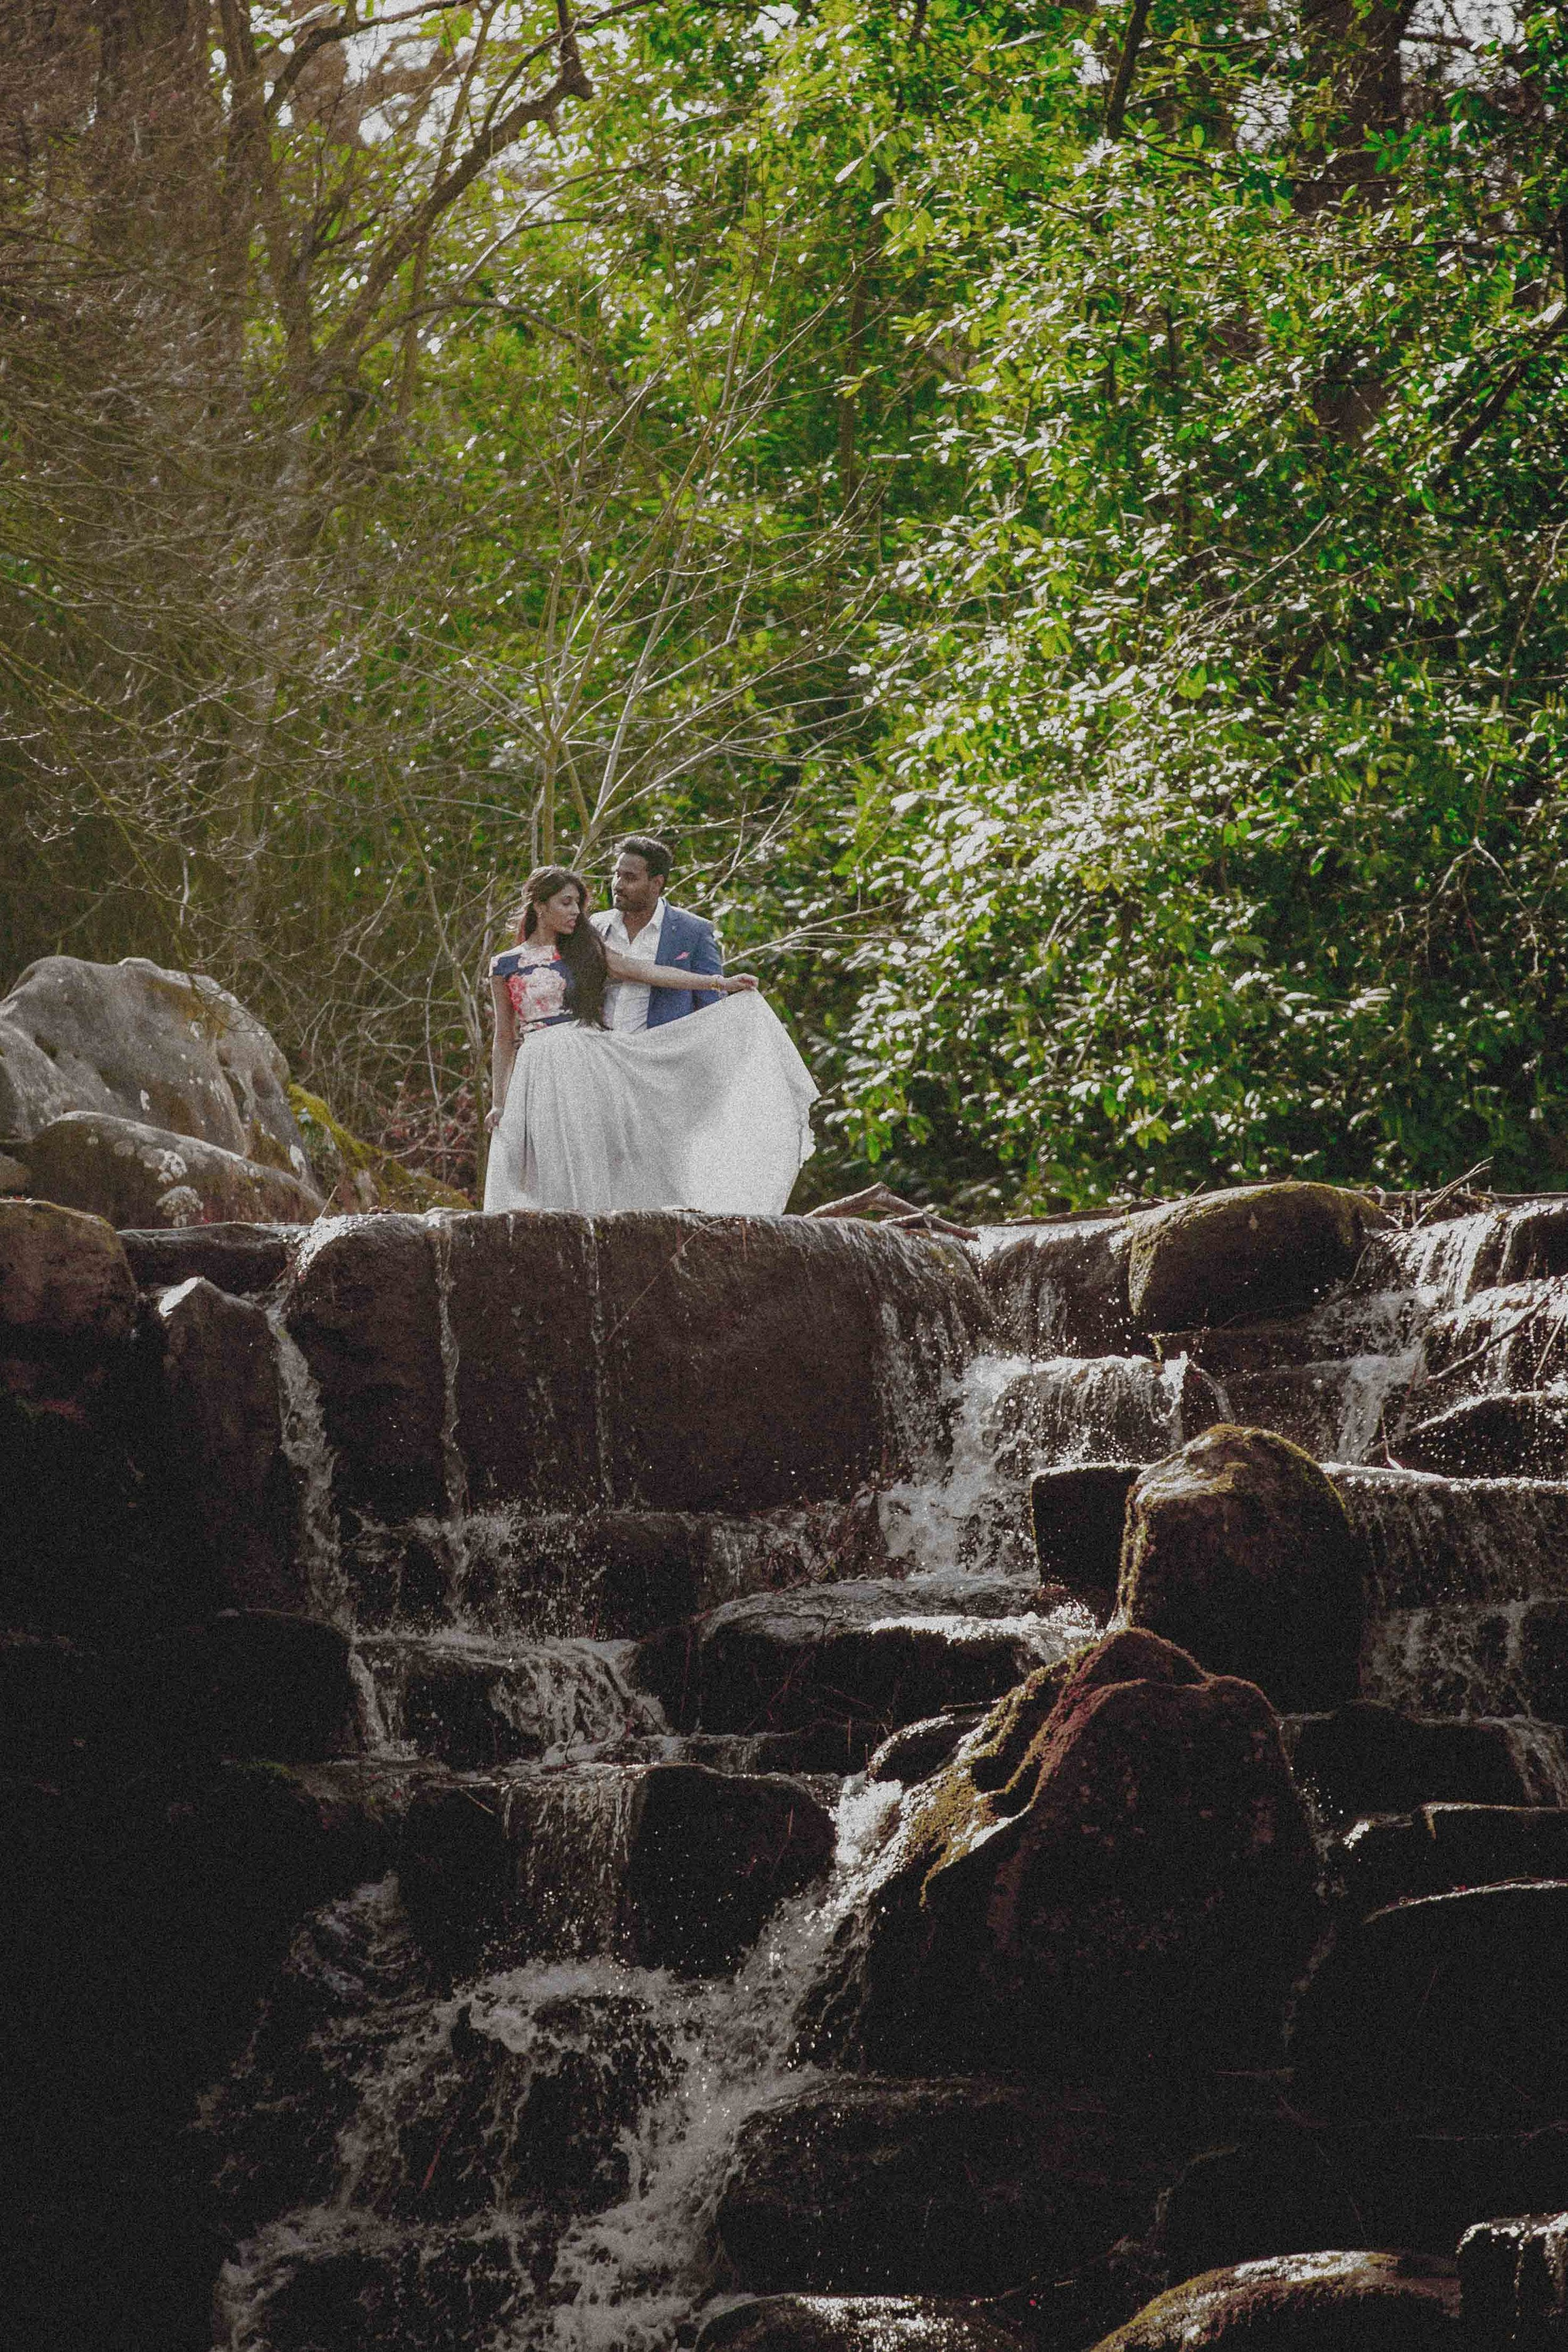 Virginia-waters-windsor-waterfall-pre-wedding-engagement-shoot-female-asian-wedding-photographer-natalia-smith-photography-7.jpg